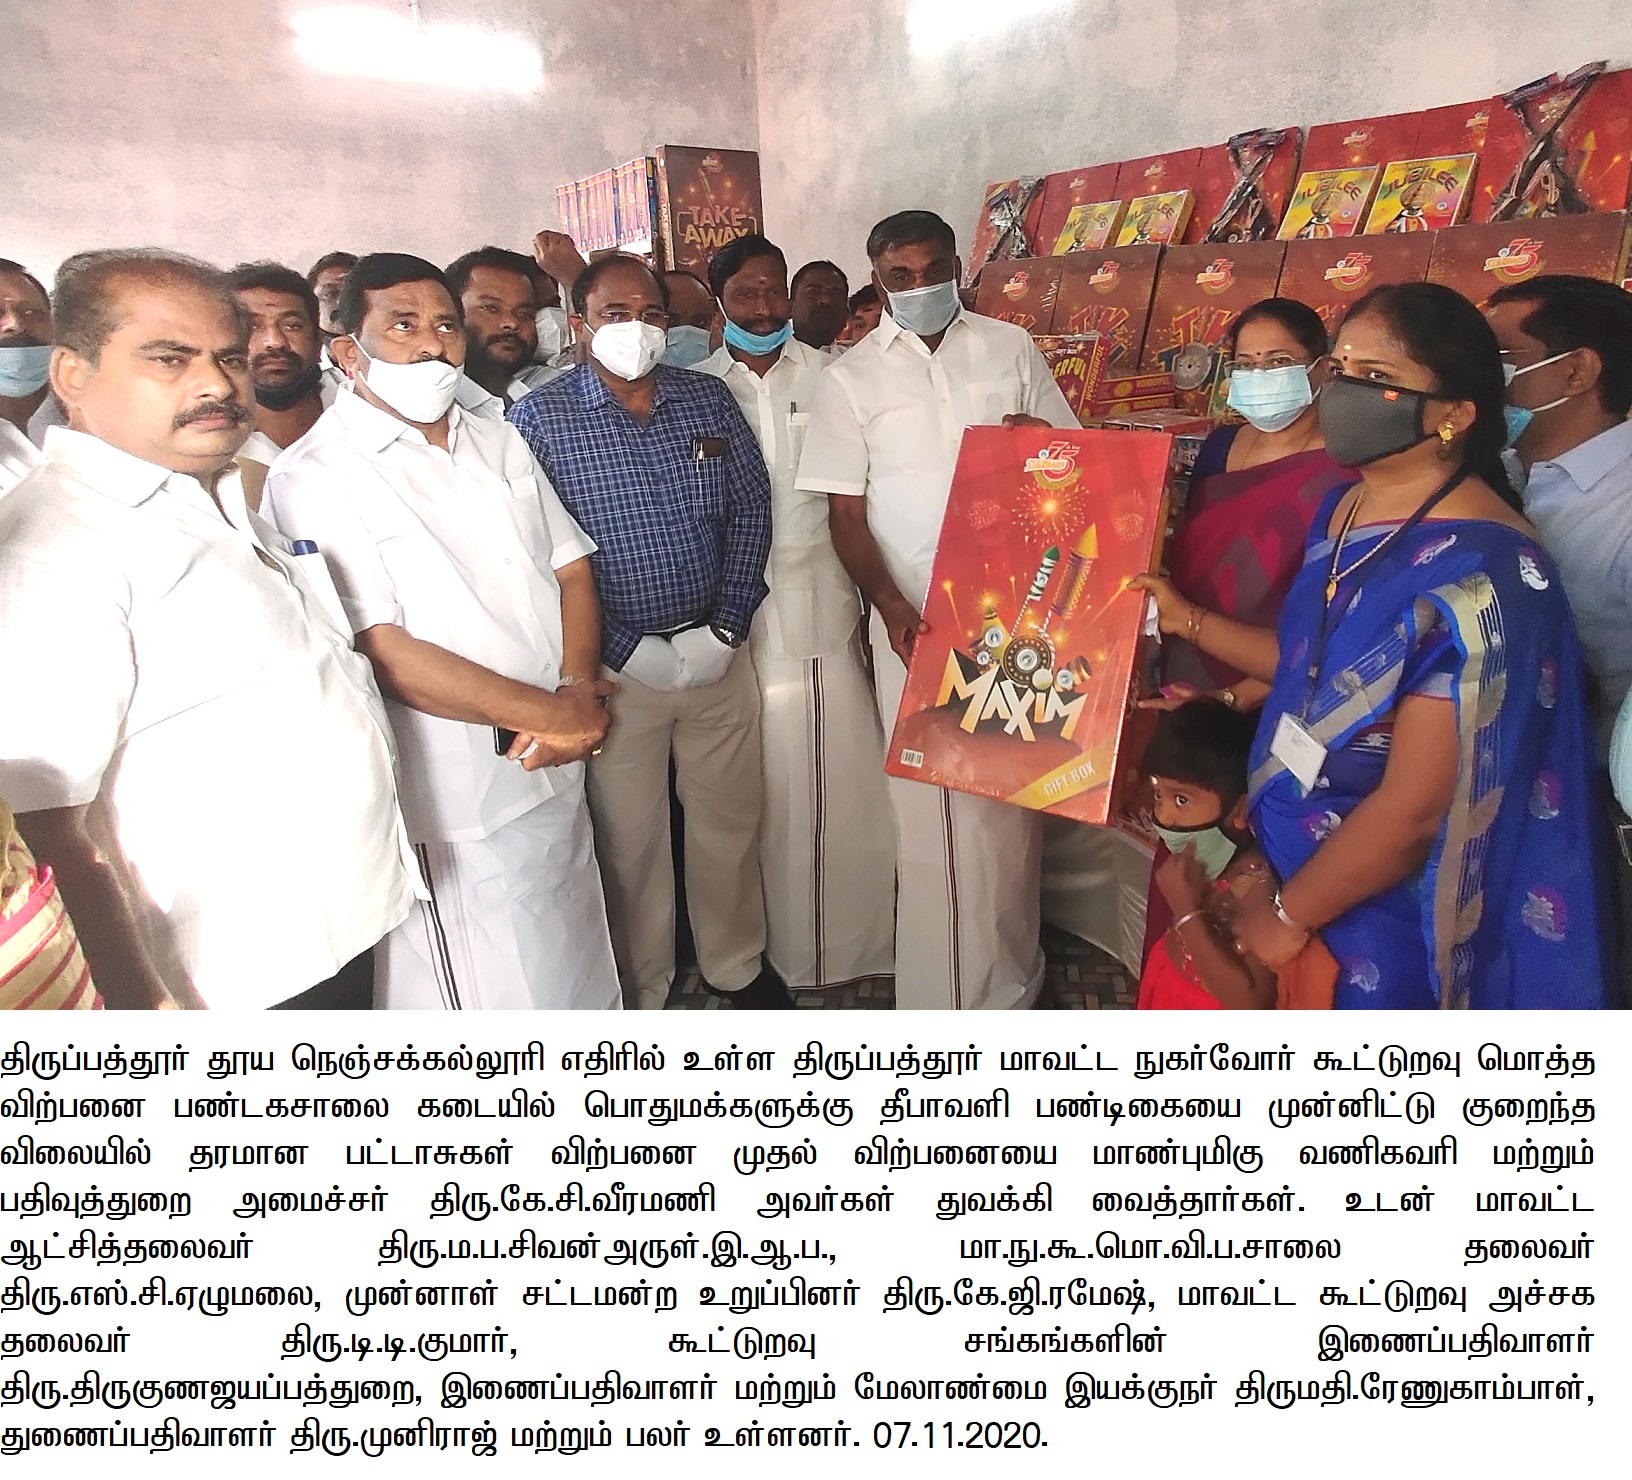 Honorable Minister K C Veeramani Inaugurated Crackers Sale at Co operative Shops 07-11-2020